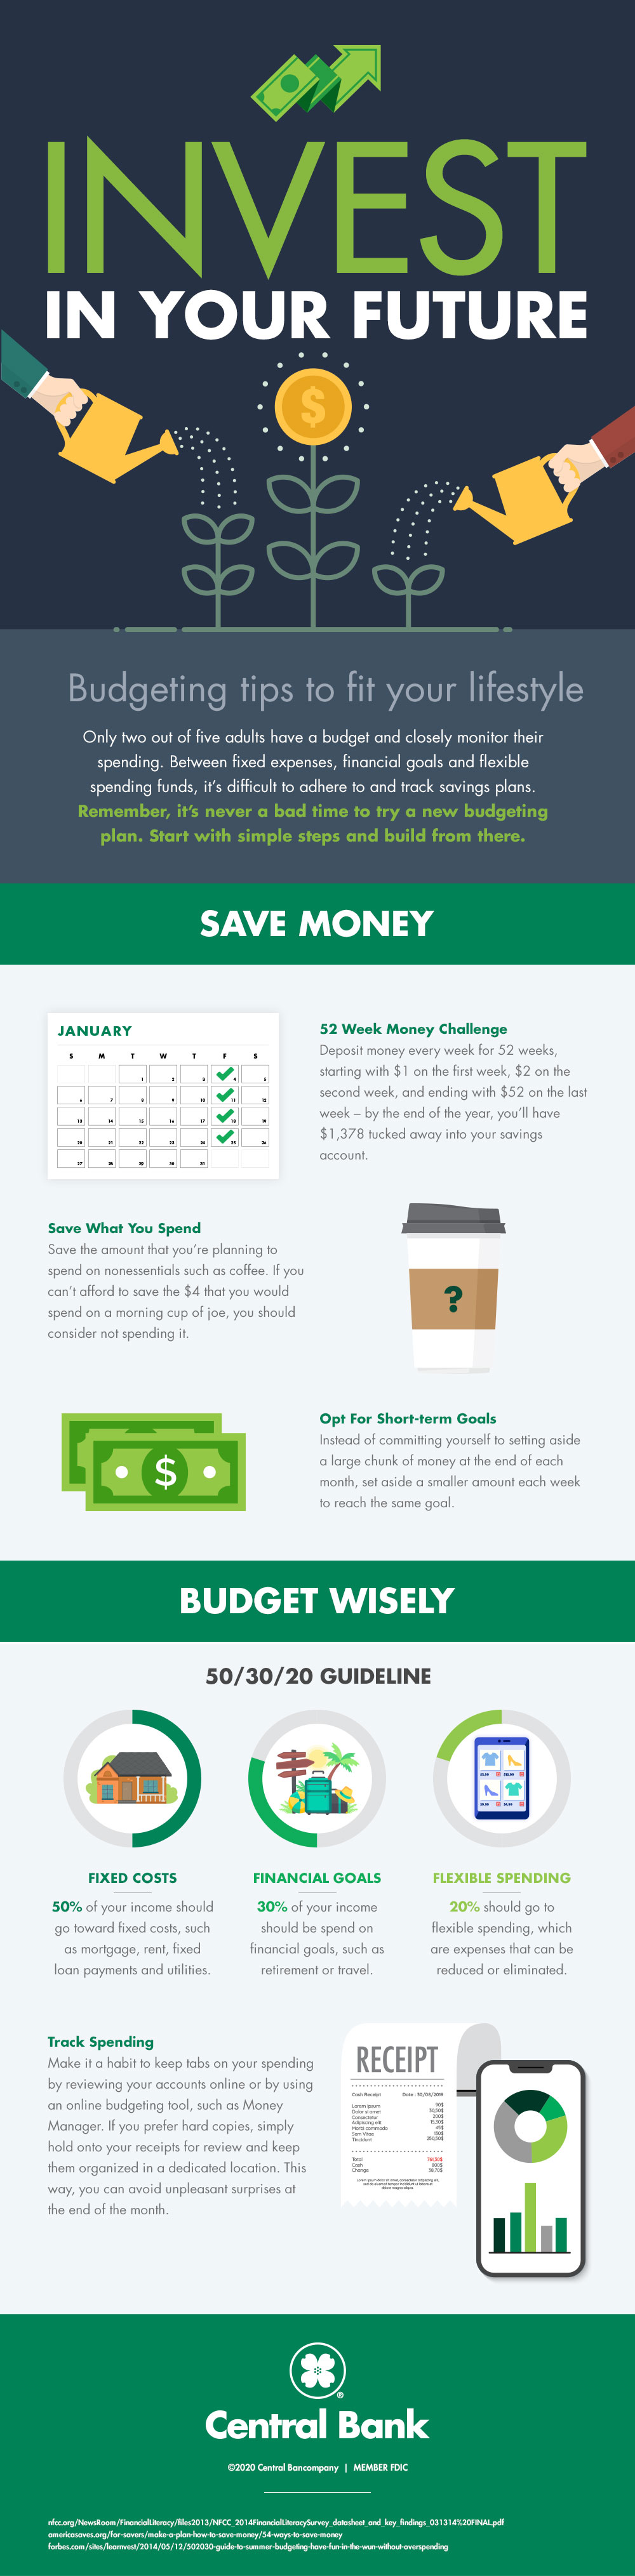 An infrographic outlining five budgeting tips to make investments fit your lifestyle